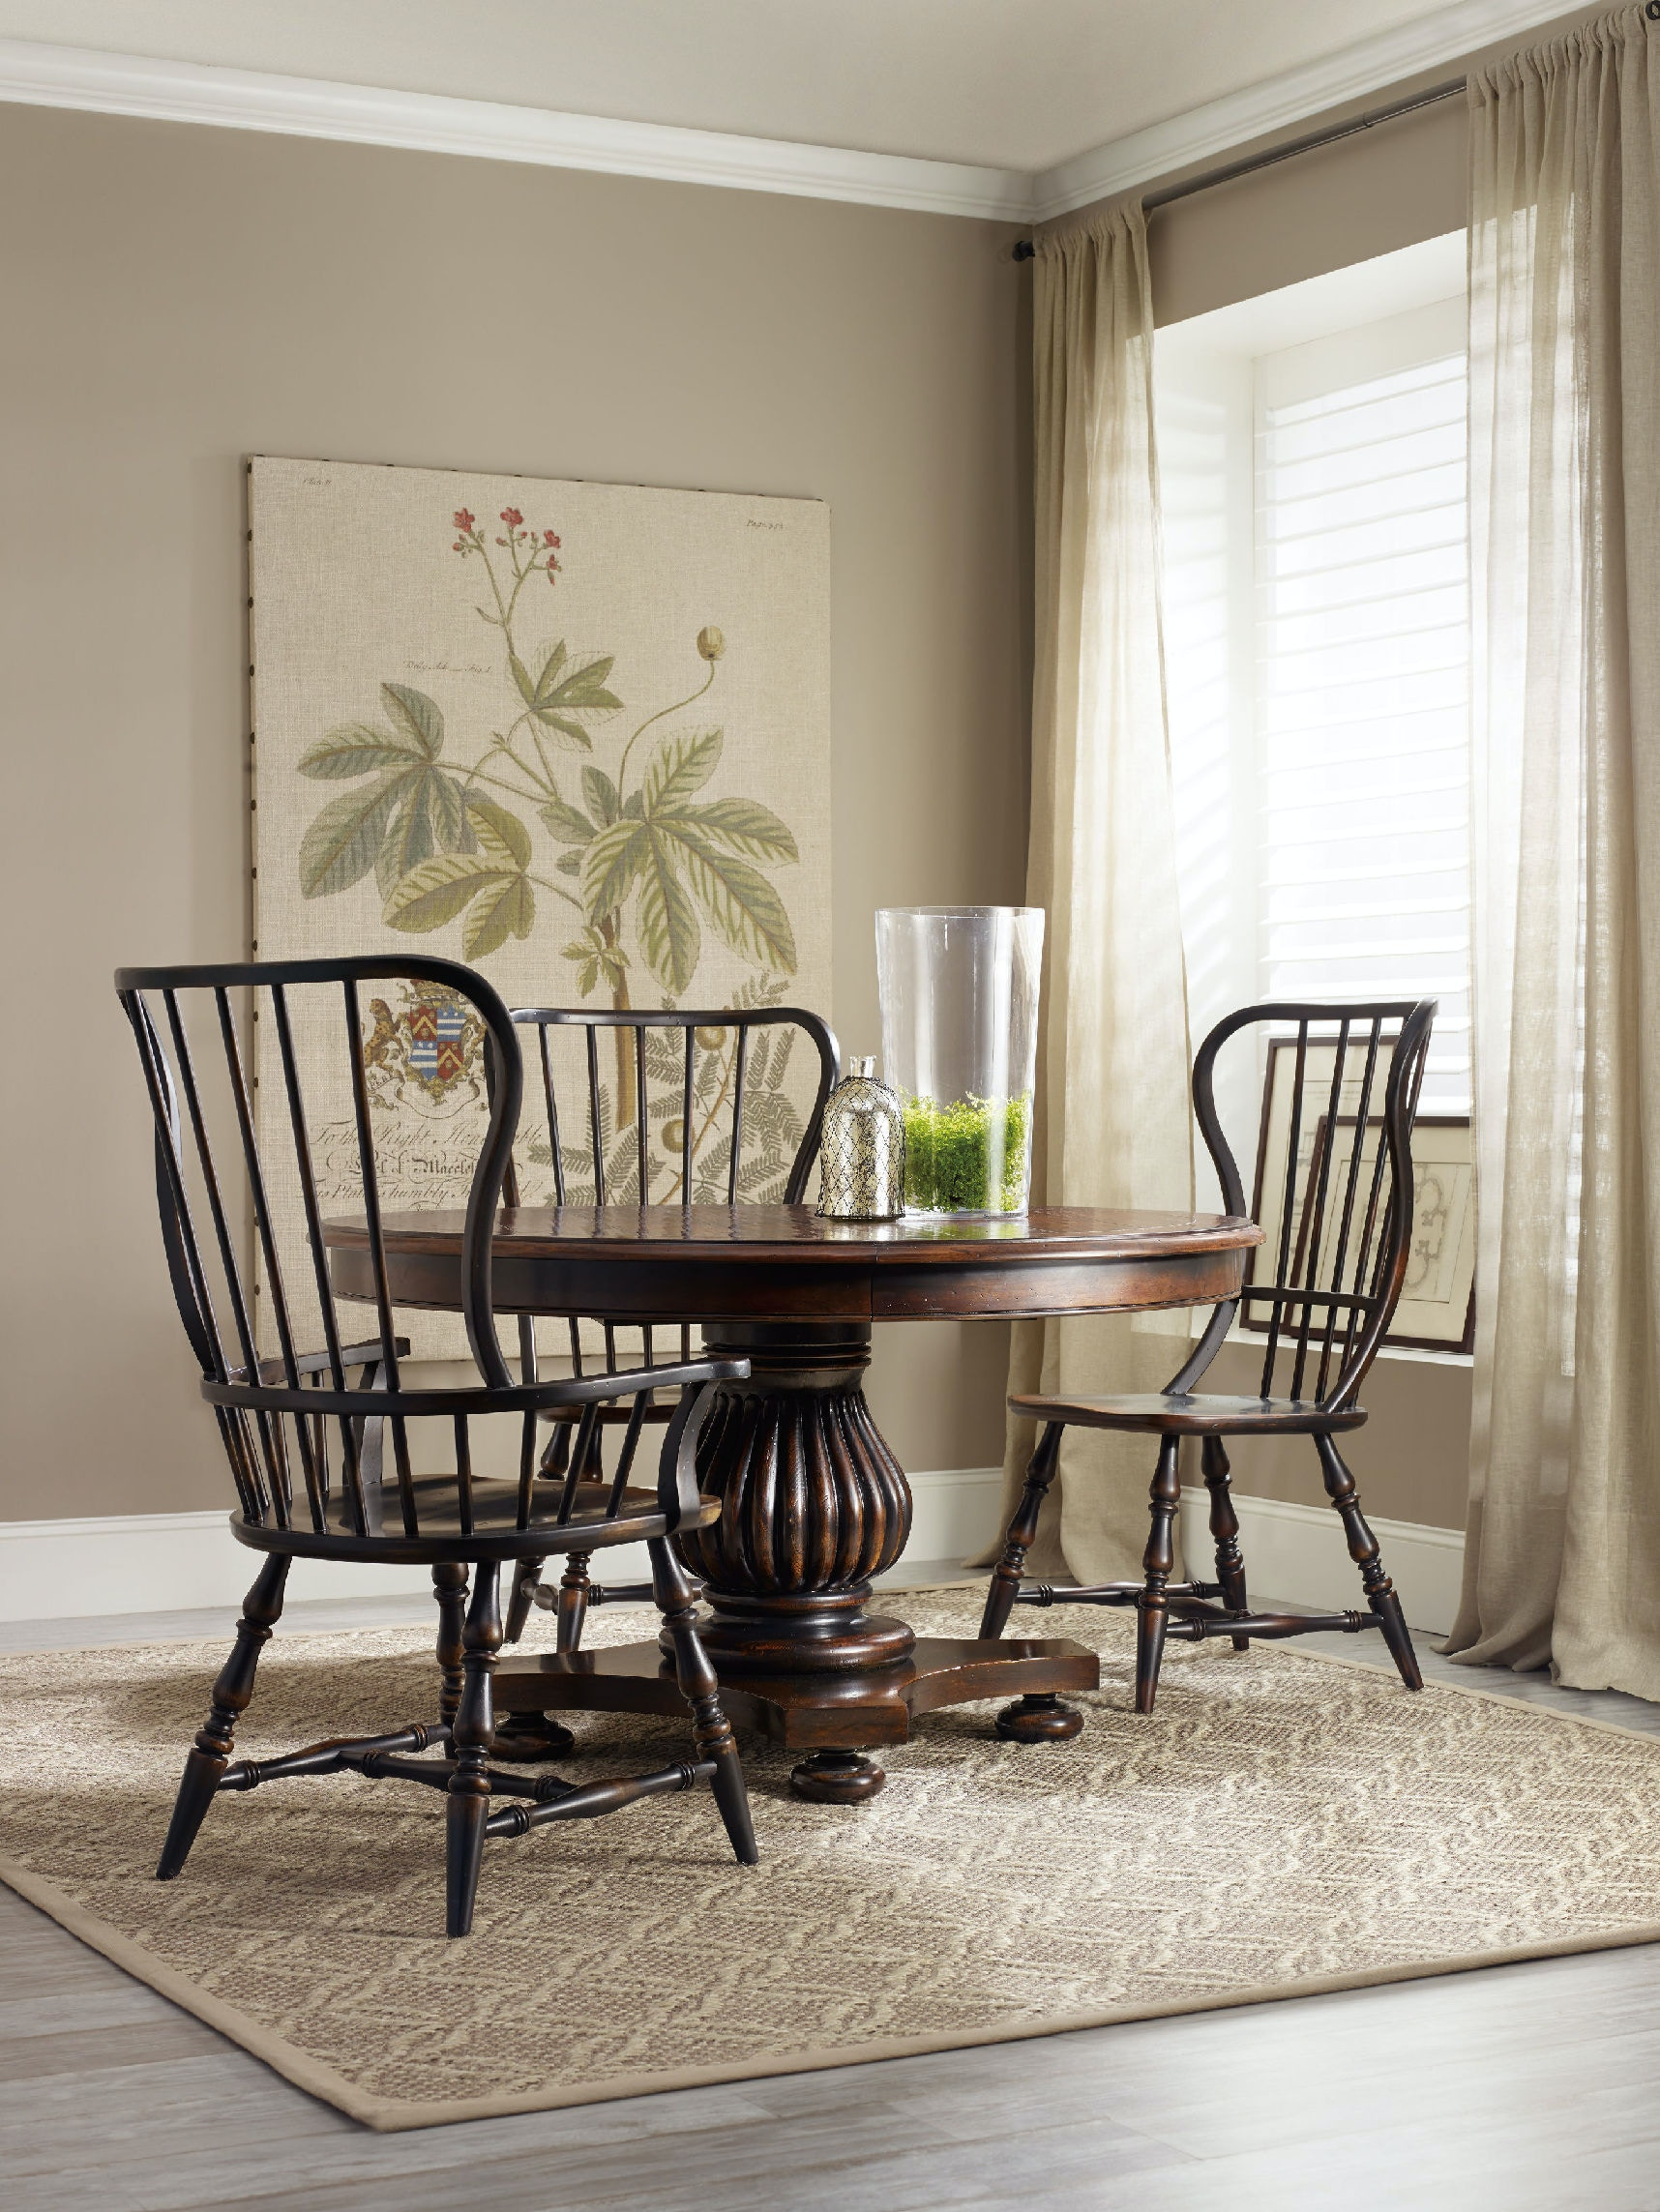 Hooker Furniture Dining Room Sanctuary Spindle Arm Chair Ebony